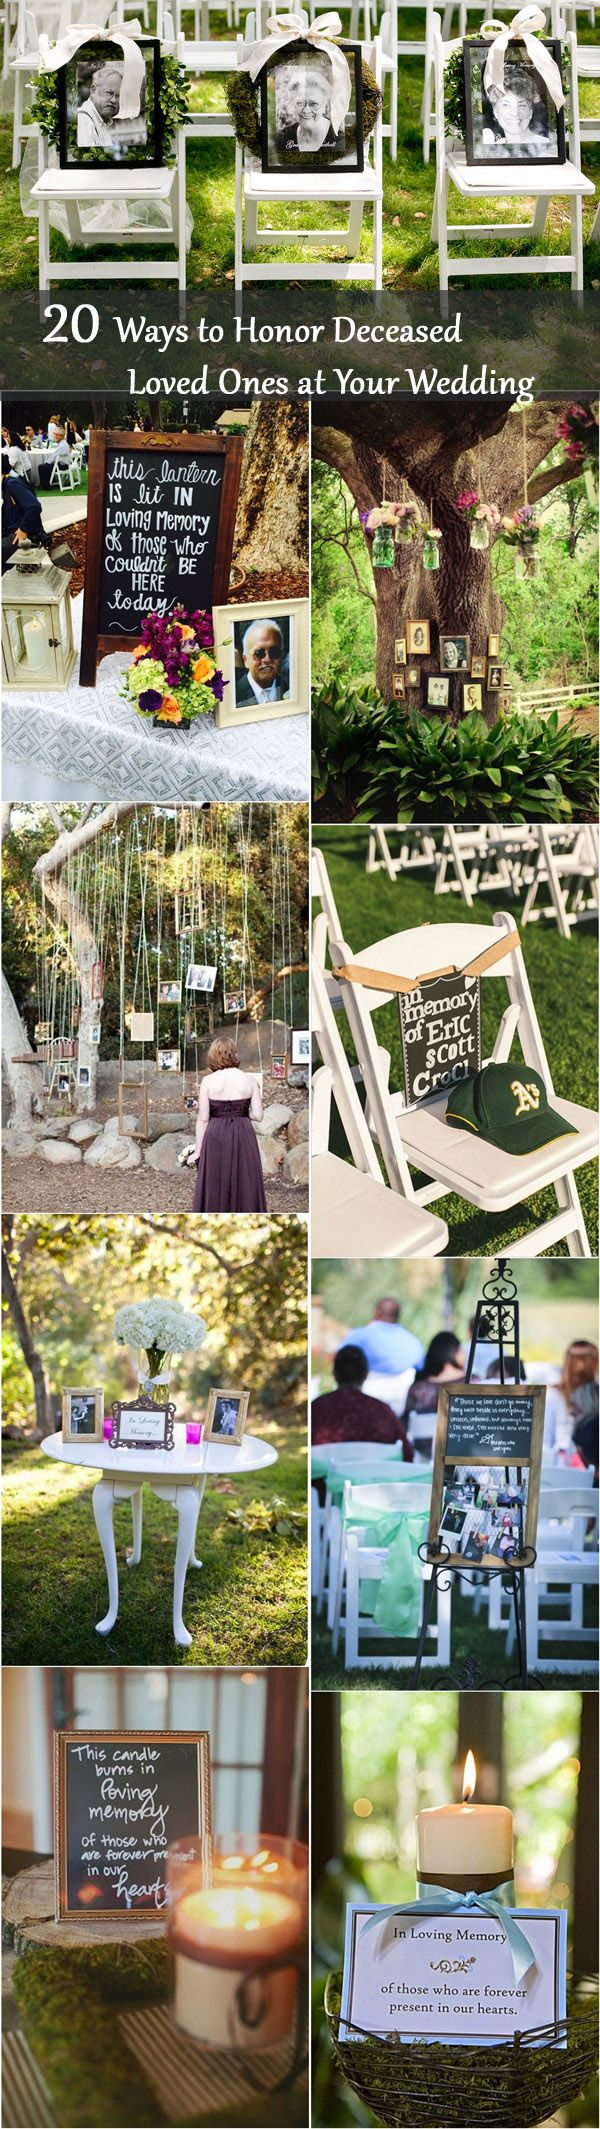 Best 25 unique wedding reception ideas ideas on pinterest best 25 unique wedding reception ideas ideas on pinterest wedding reception ideas wedding decorations and wedding ideas to remember loved ones junglespirit Choice Image